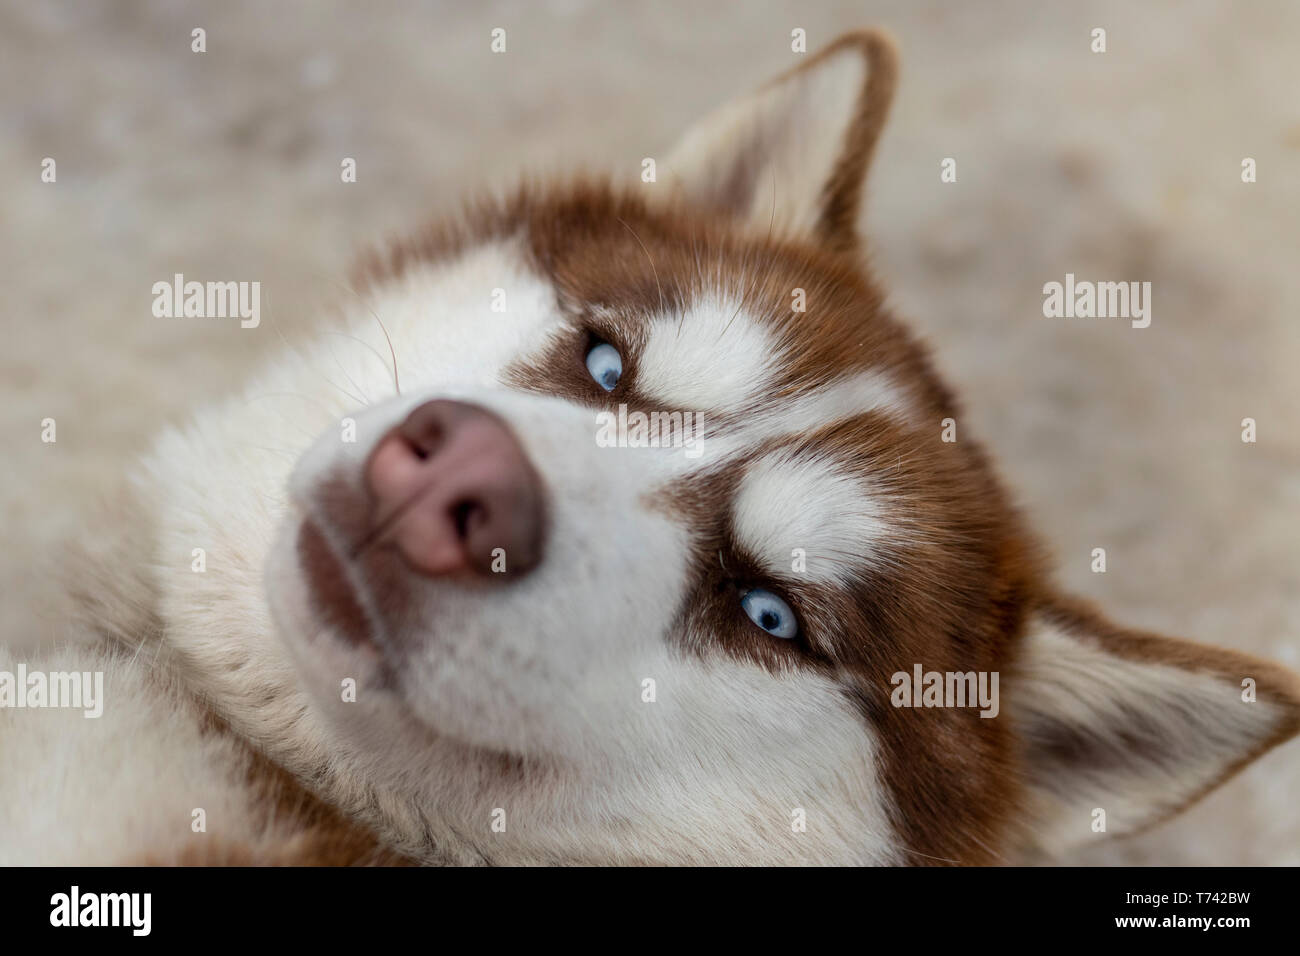 Close up blue-eyed Gray Adult Siberian Husky Dog portrait Stock Photo